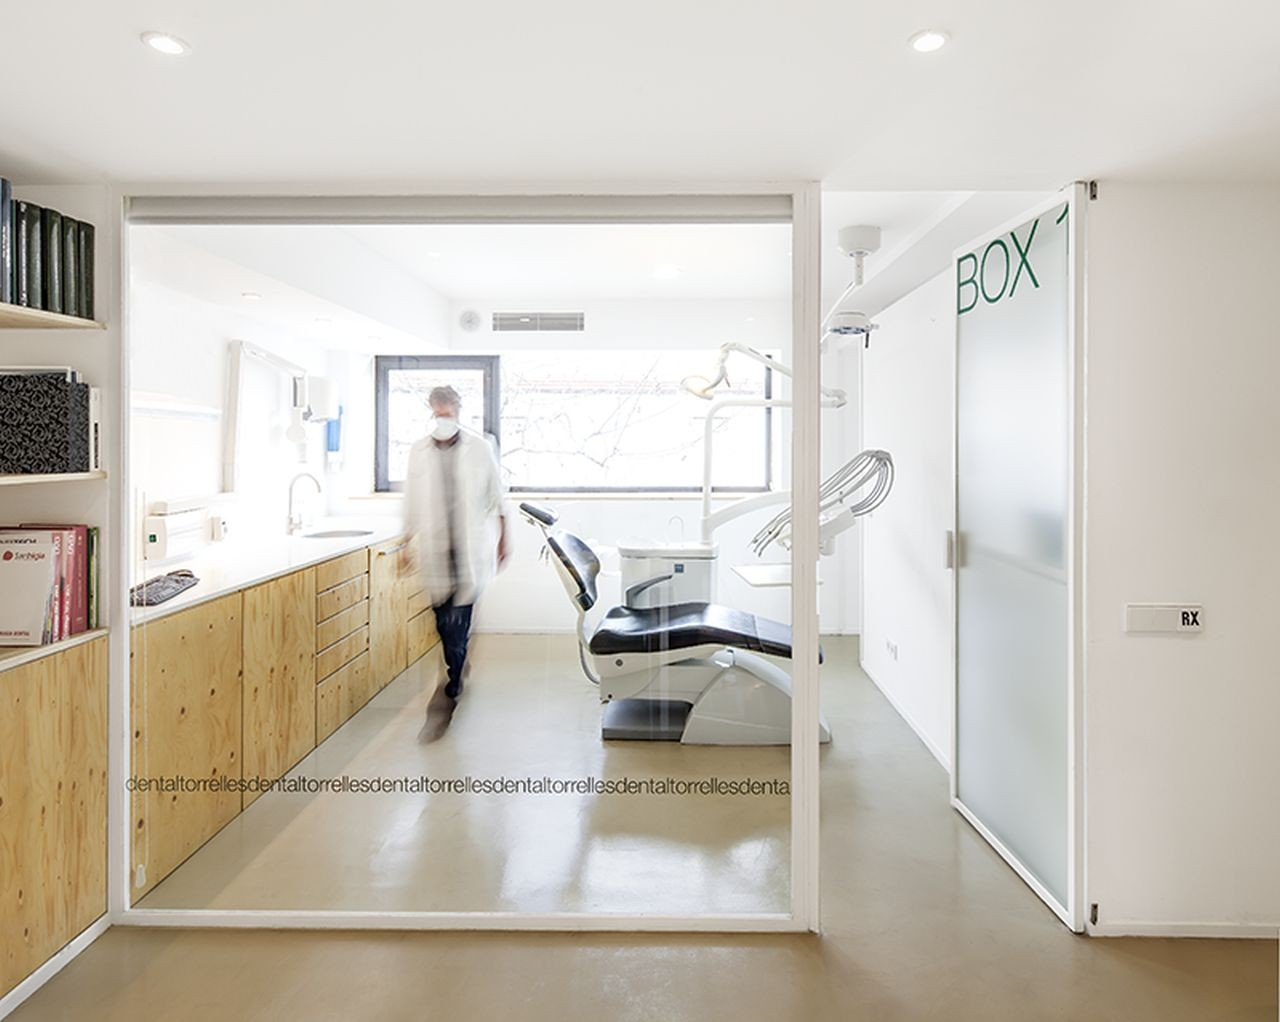 Dental Clinic In Torrelles Sergi Pons Archdaily